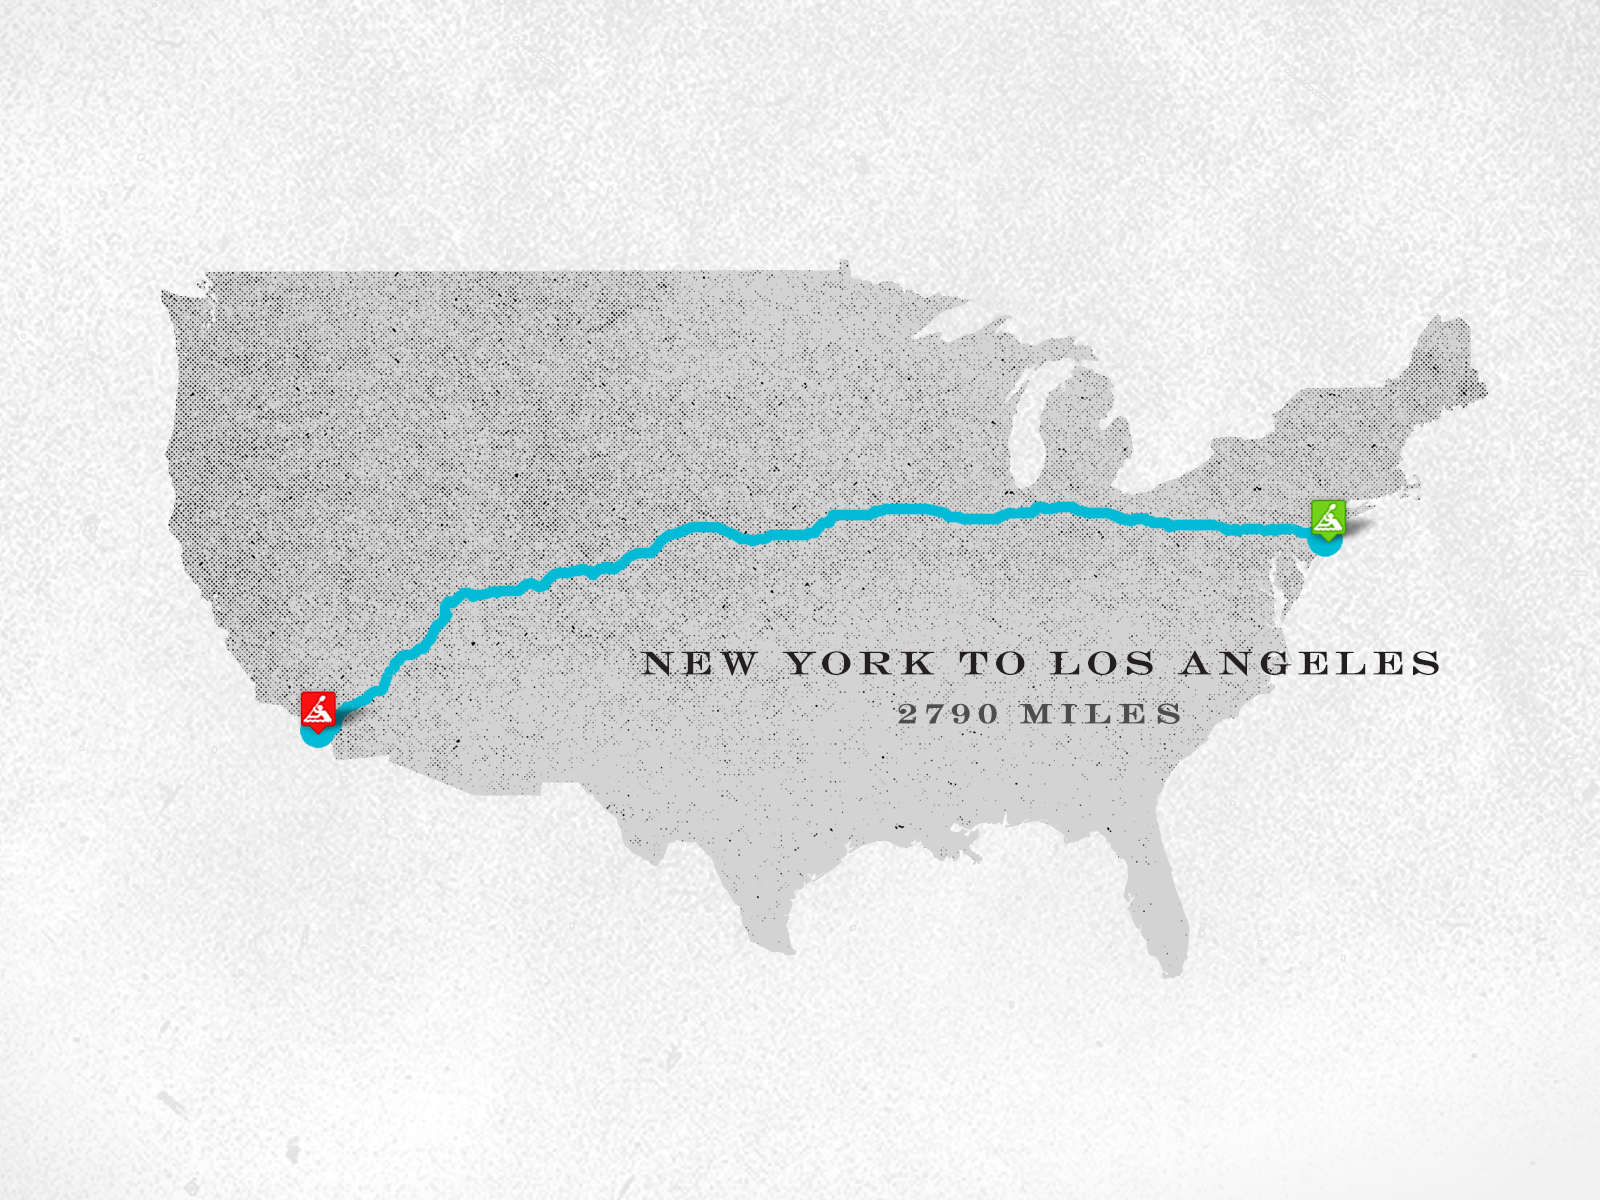 Miles Paddled New York To Los Angeles Miles Paddled